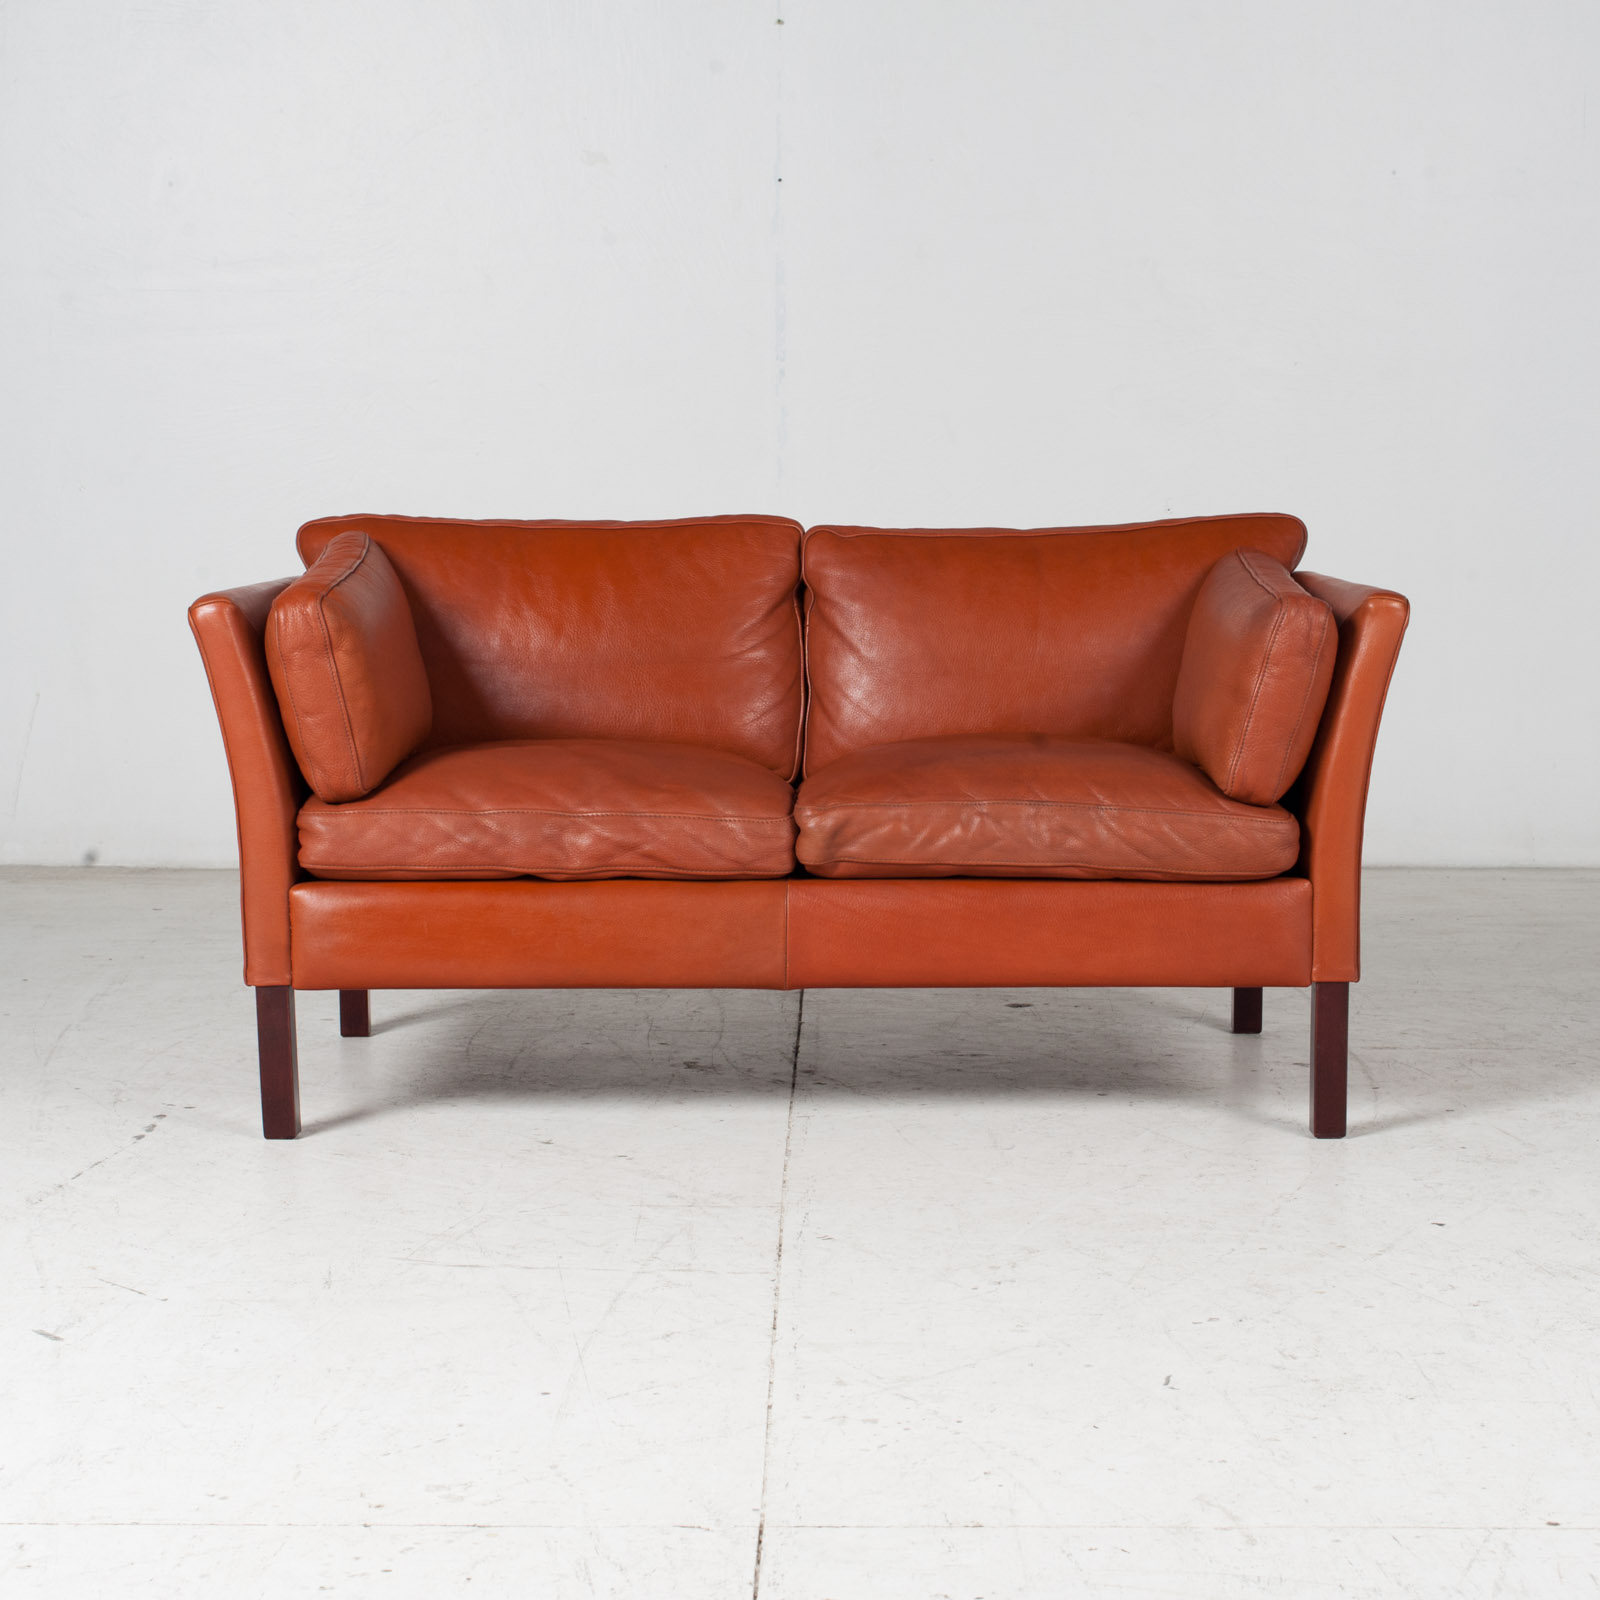 2 Seat Sofa By Stouby In Tan Leather, 1960s, Denmark 1